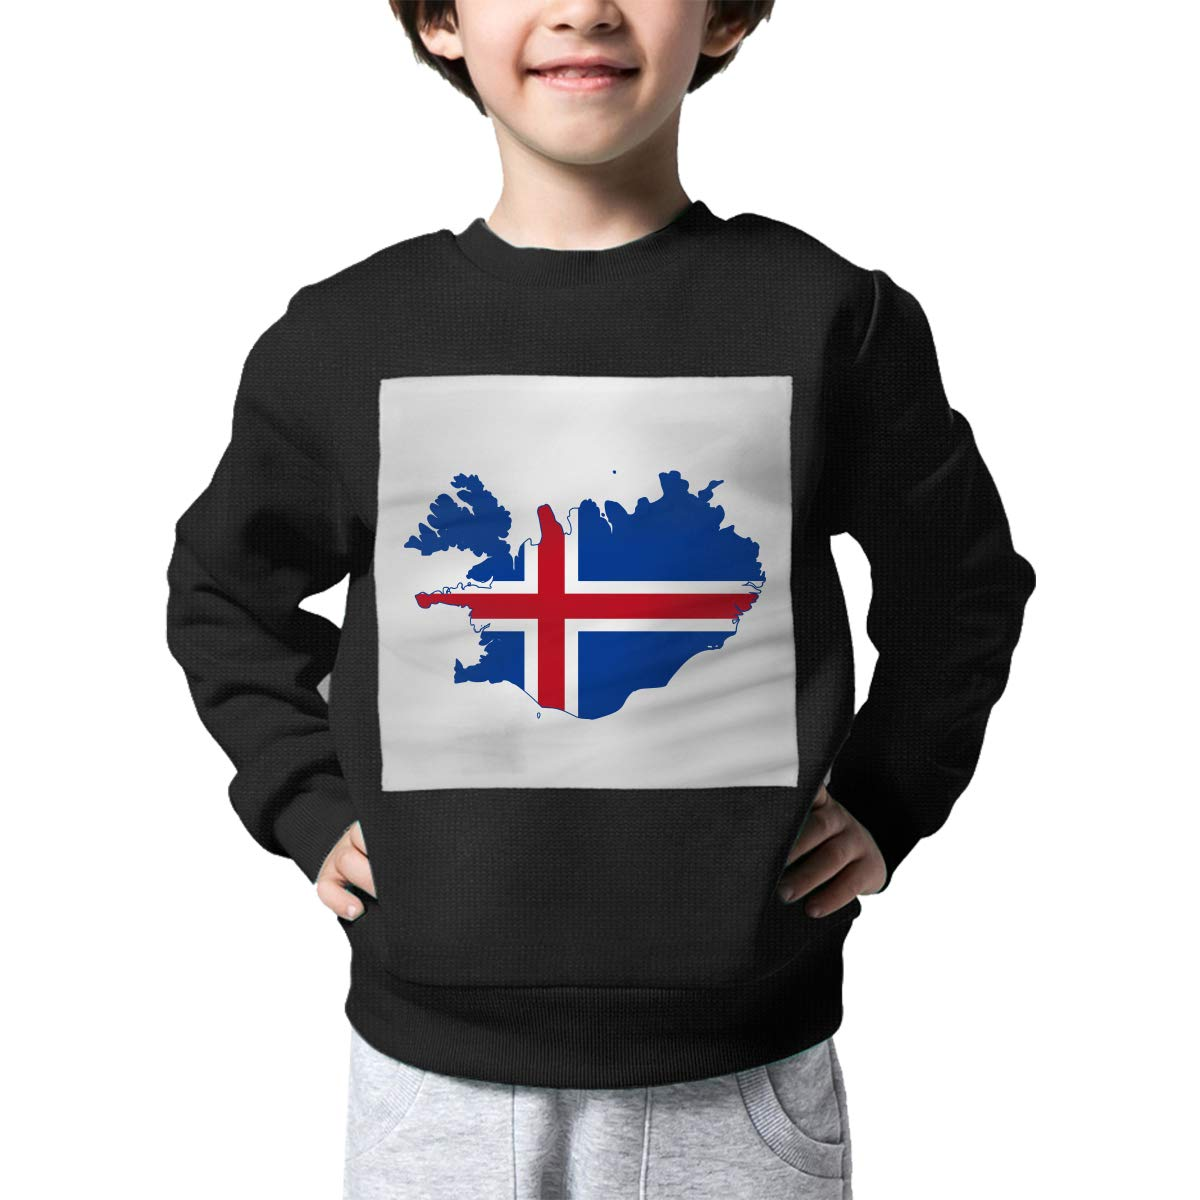 AW-KOCP Childrens Flag of Iceland Map Sweater Kids Outerwear